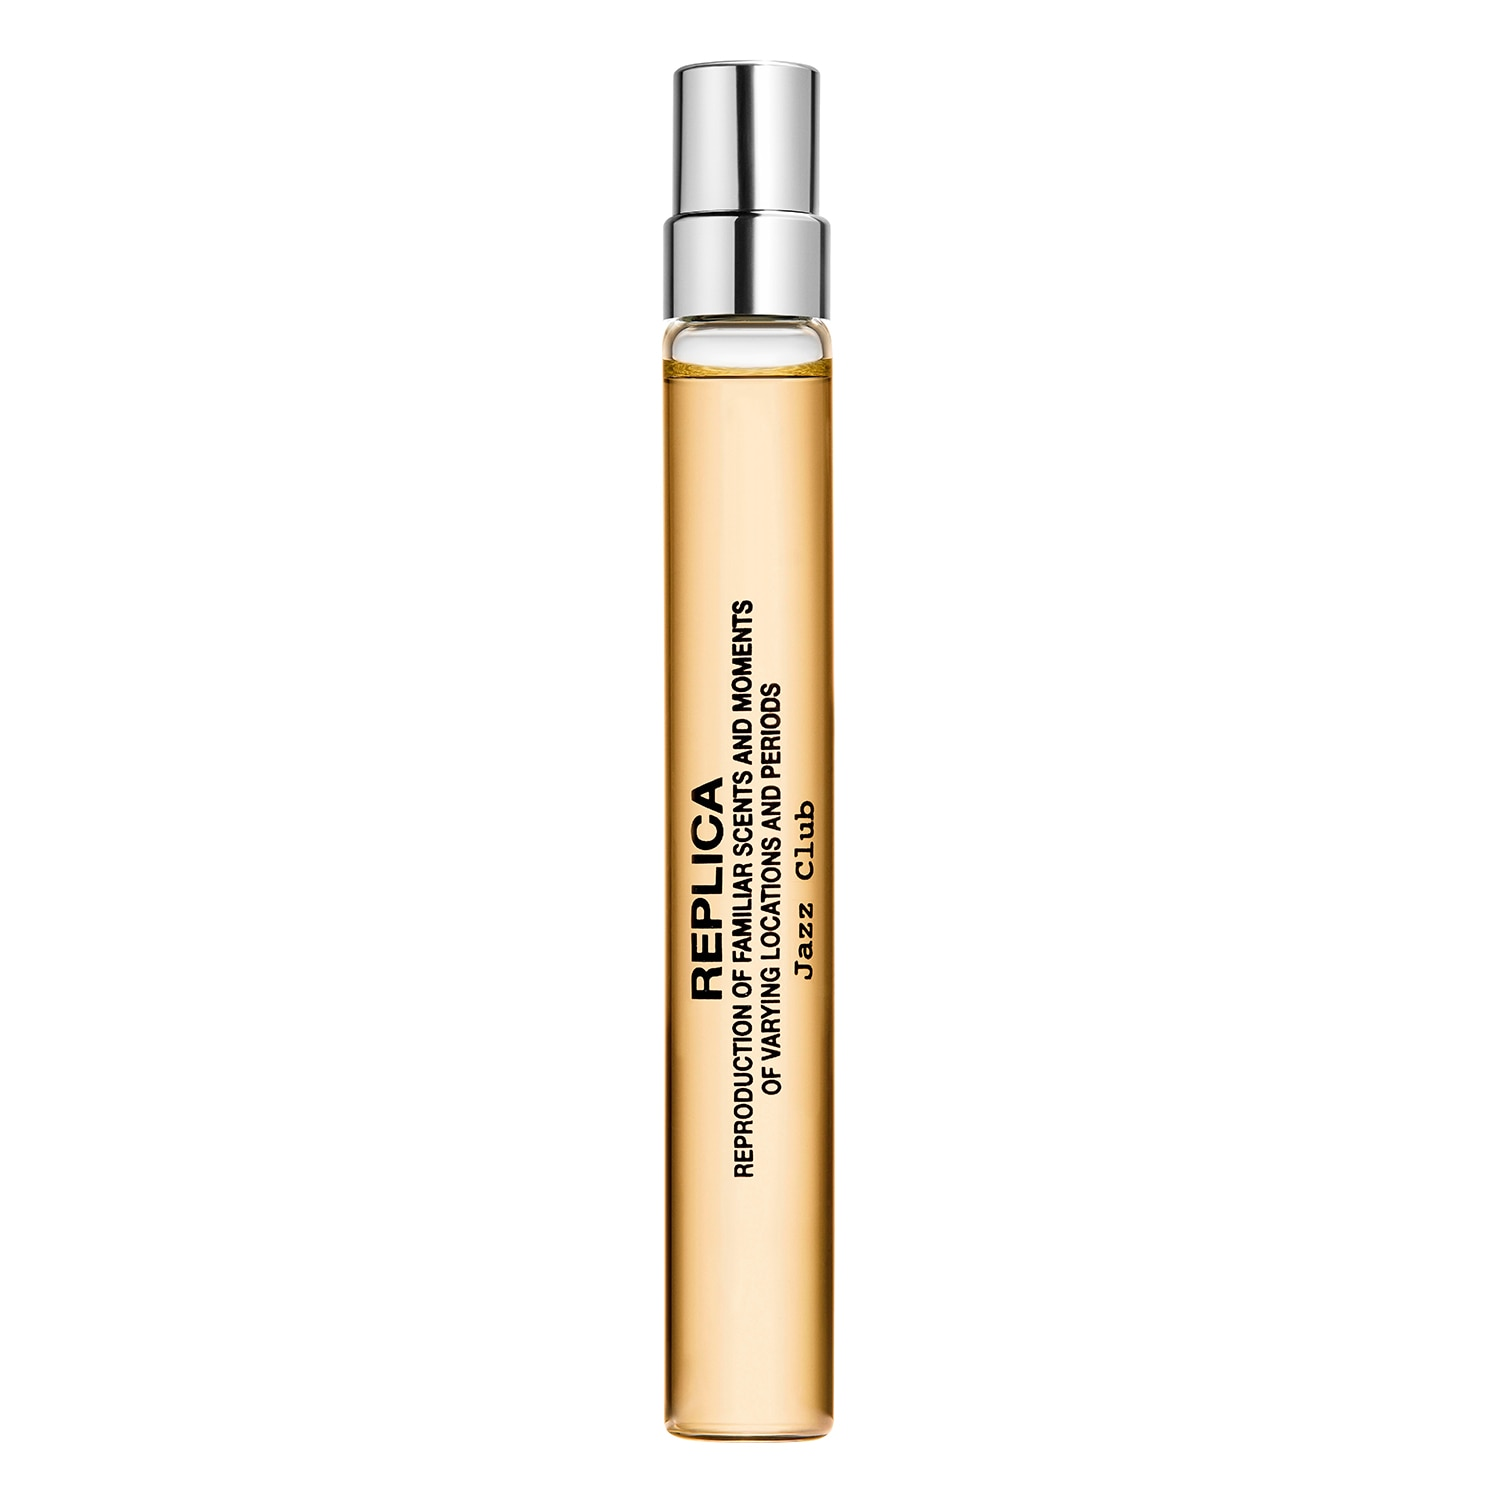 REPLICA JAZZ CLUB ROLLERBALL EAU DE TOILETTE 10ML